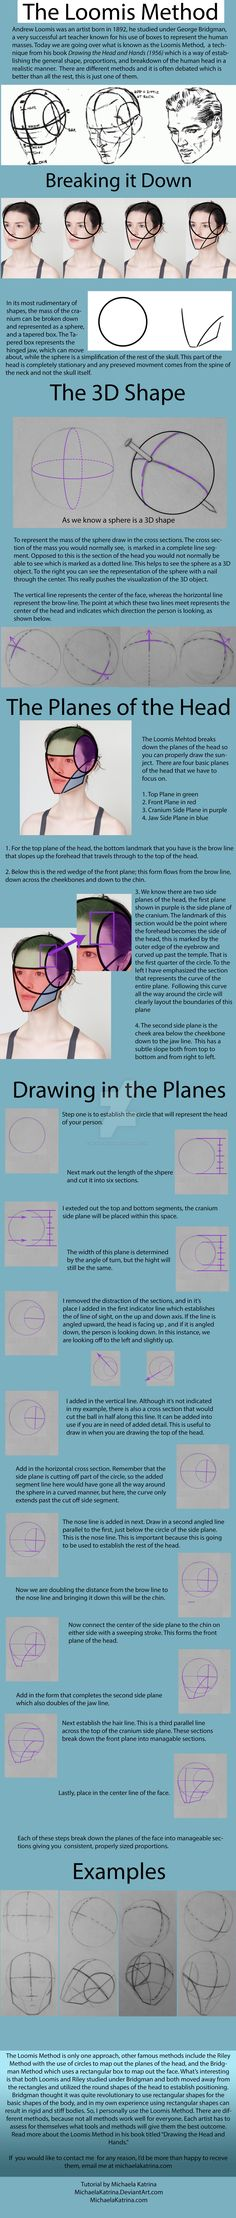 Drawing Portraits - Loomis Method Tutorial by MichaelaKatrina. on Discover The Secrets Of Drawing Realistic Pencil Portraits.Let Me Show You How You Too Can Draw Realistic Pencil Portraits With My Truly Step-by-Step Guide. Human Figure Sketches, Human Figure Drawing, Figure Sketching, Figure Drawing Reference, Anatomy Reference, Head Anatomy, Anatomy Drawing, Anatomy Sketches, Portrait Au Crayon